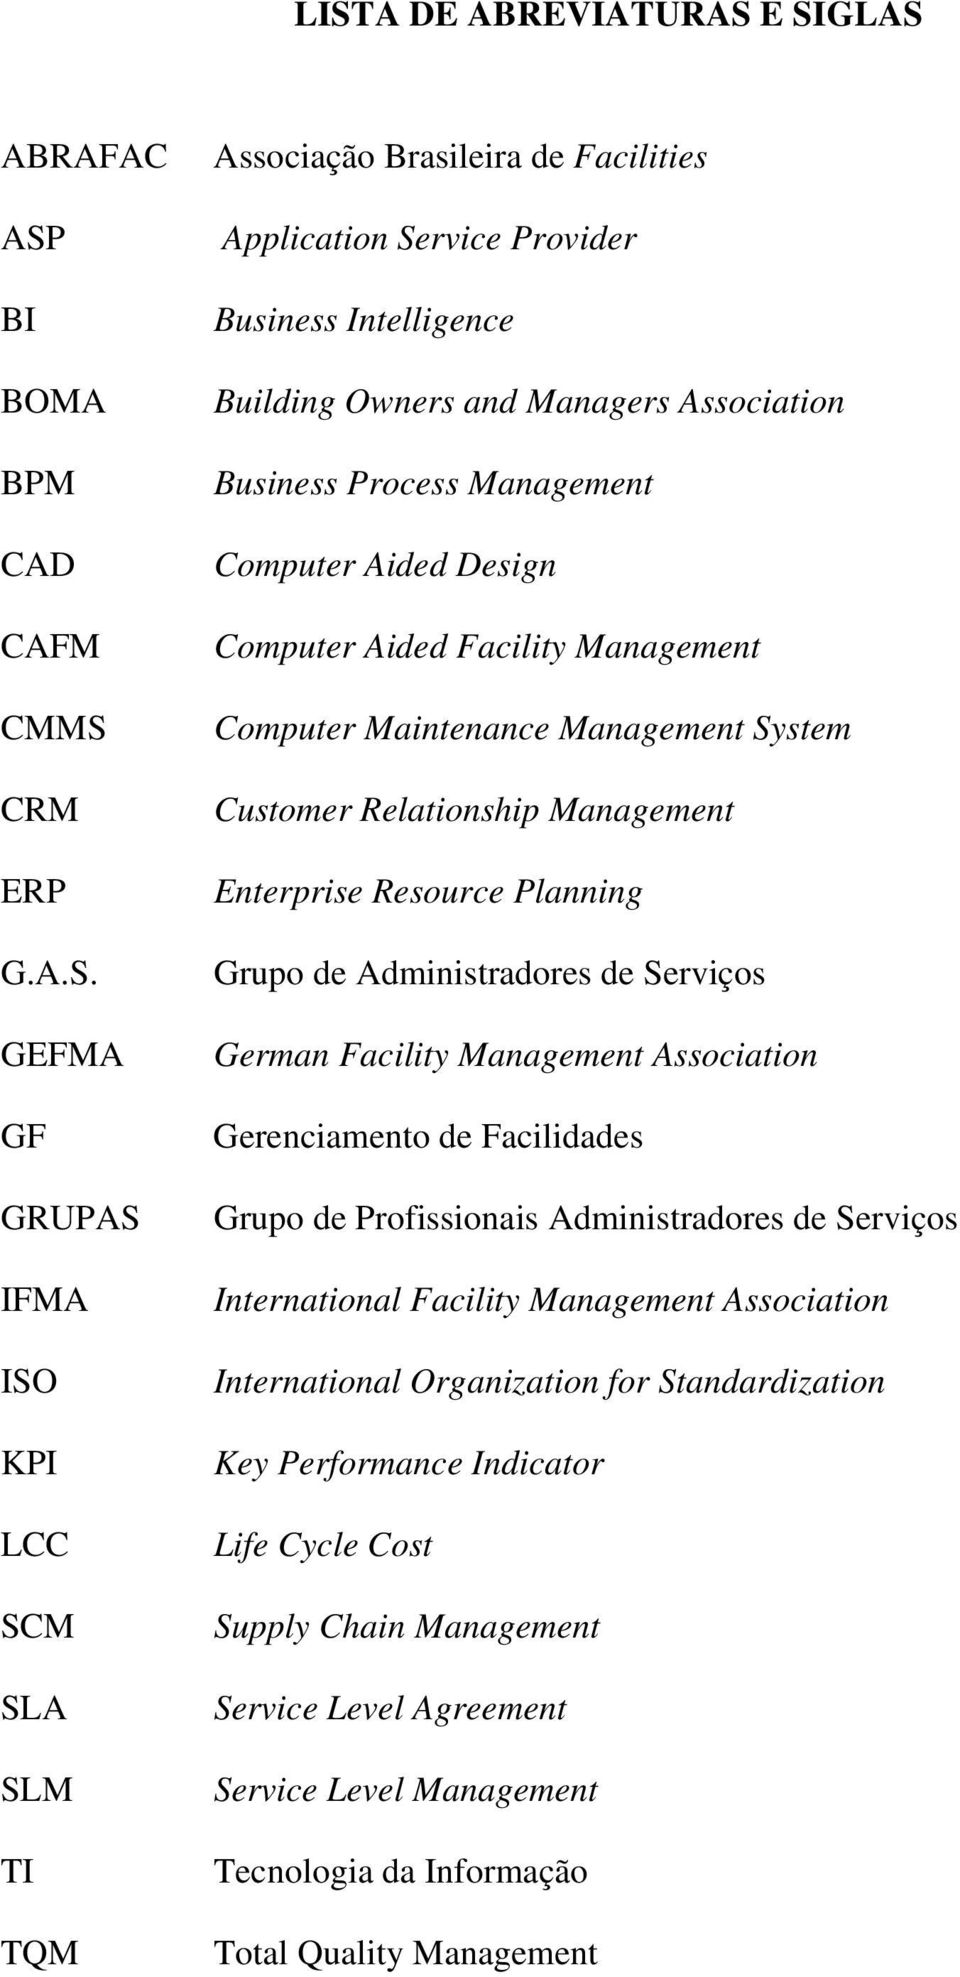 Customer Relationship Management Enterprise Resource Planning Grupo de Administradores de Serviços German Facility Management Association Gerenciamento de Facilidades Grupo de Profissionais